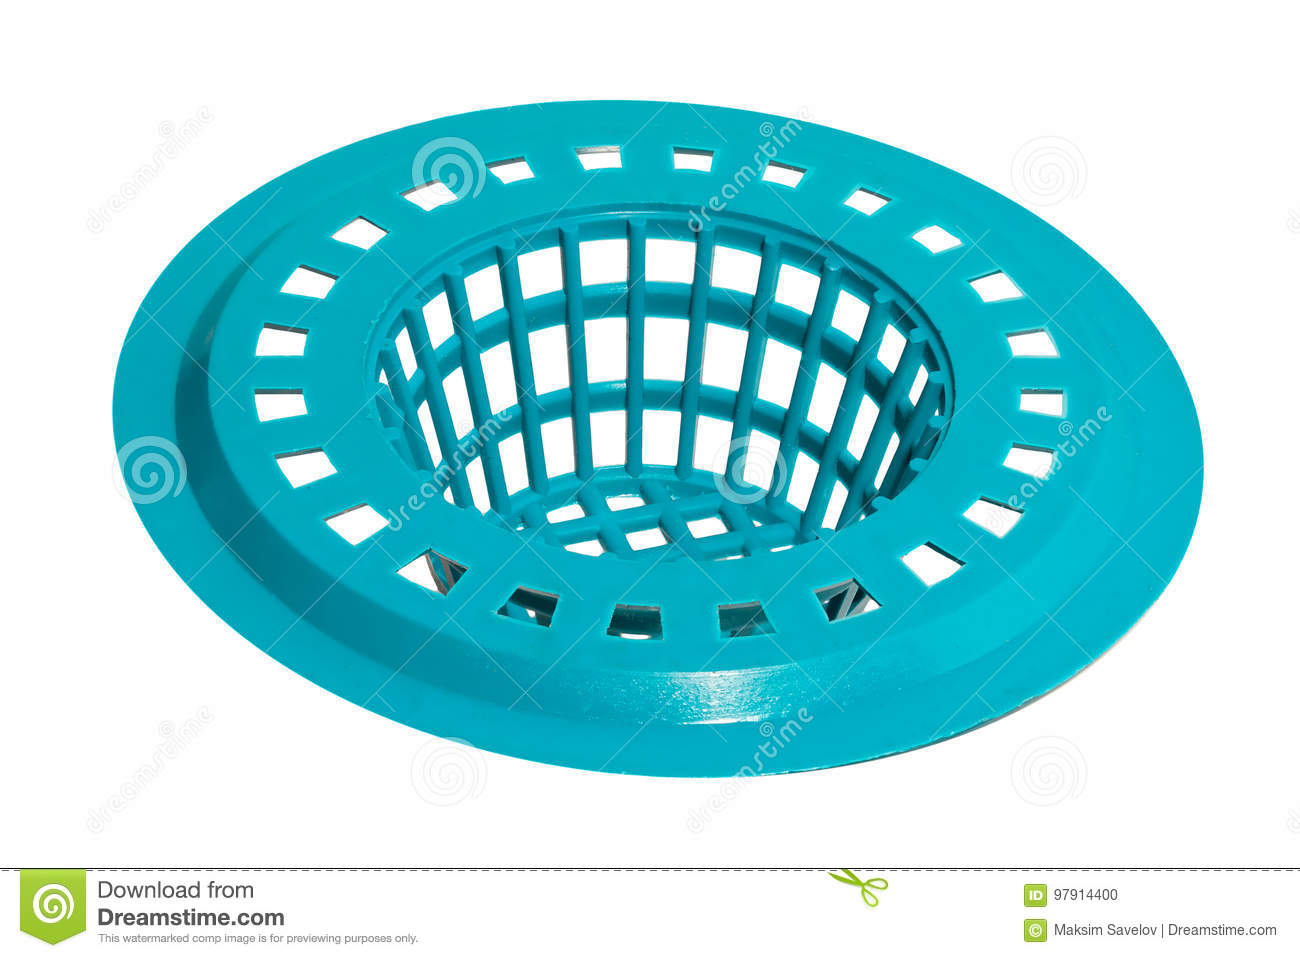 Plastic drain sink cover stock photo. Image of modern - 97914400